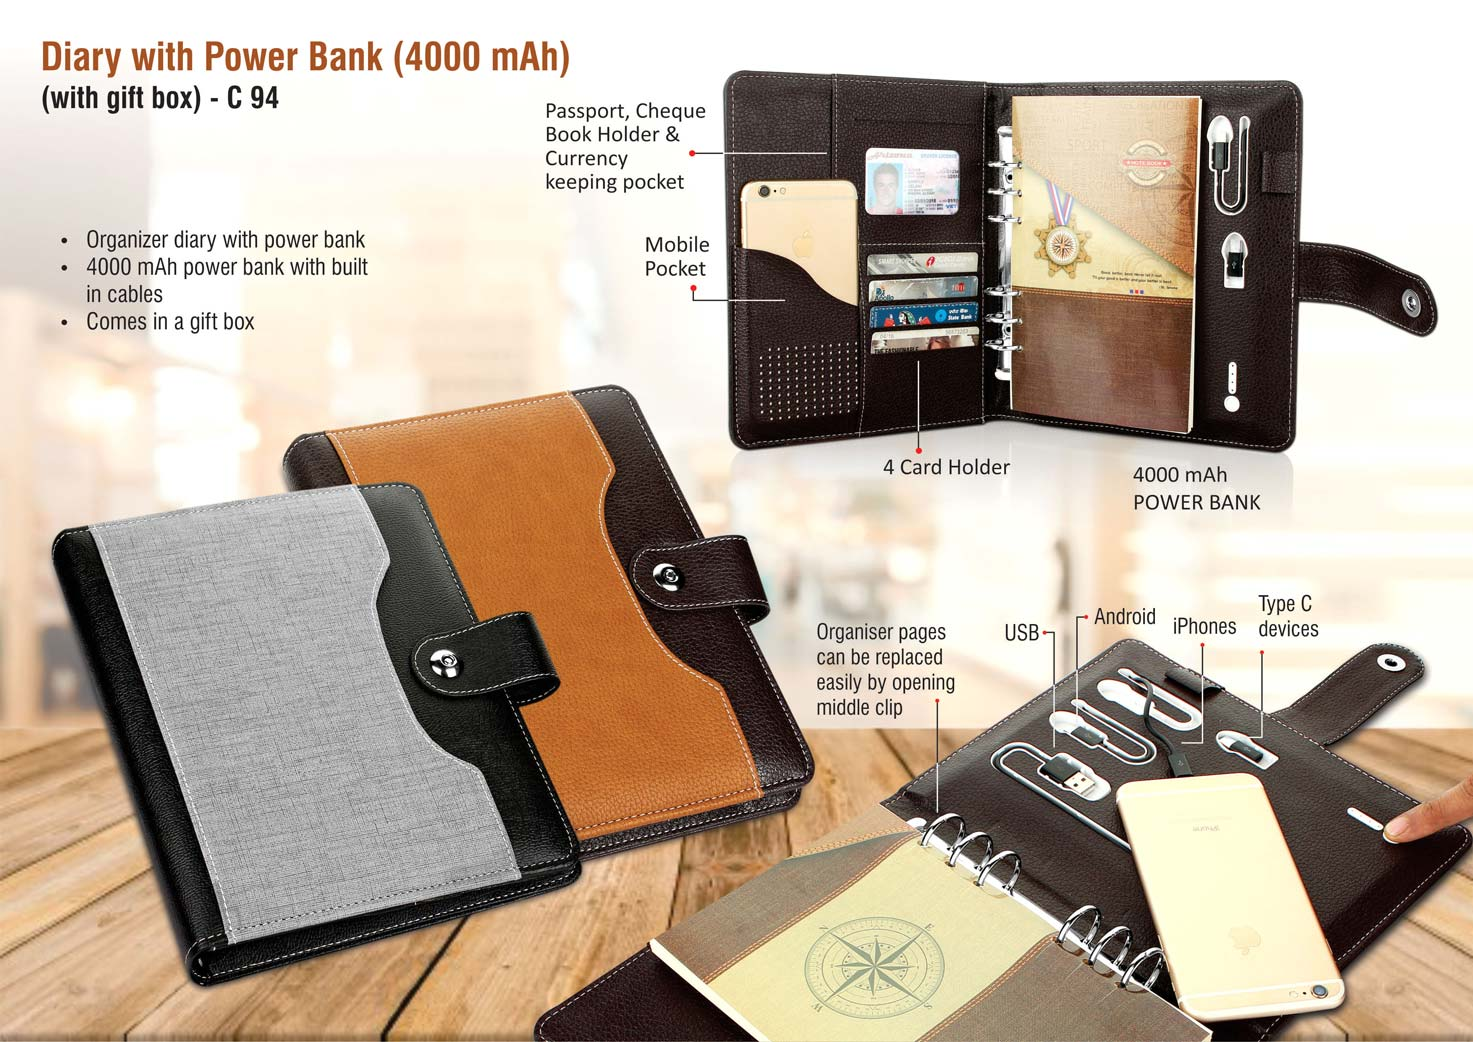 C94 - Diary with Power bank (4000 mAh) (with gift box)